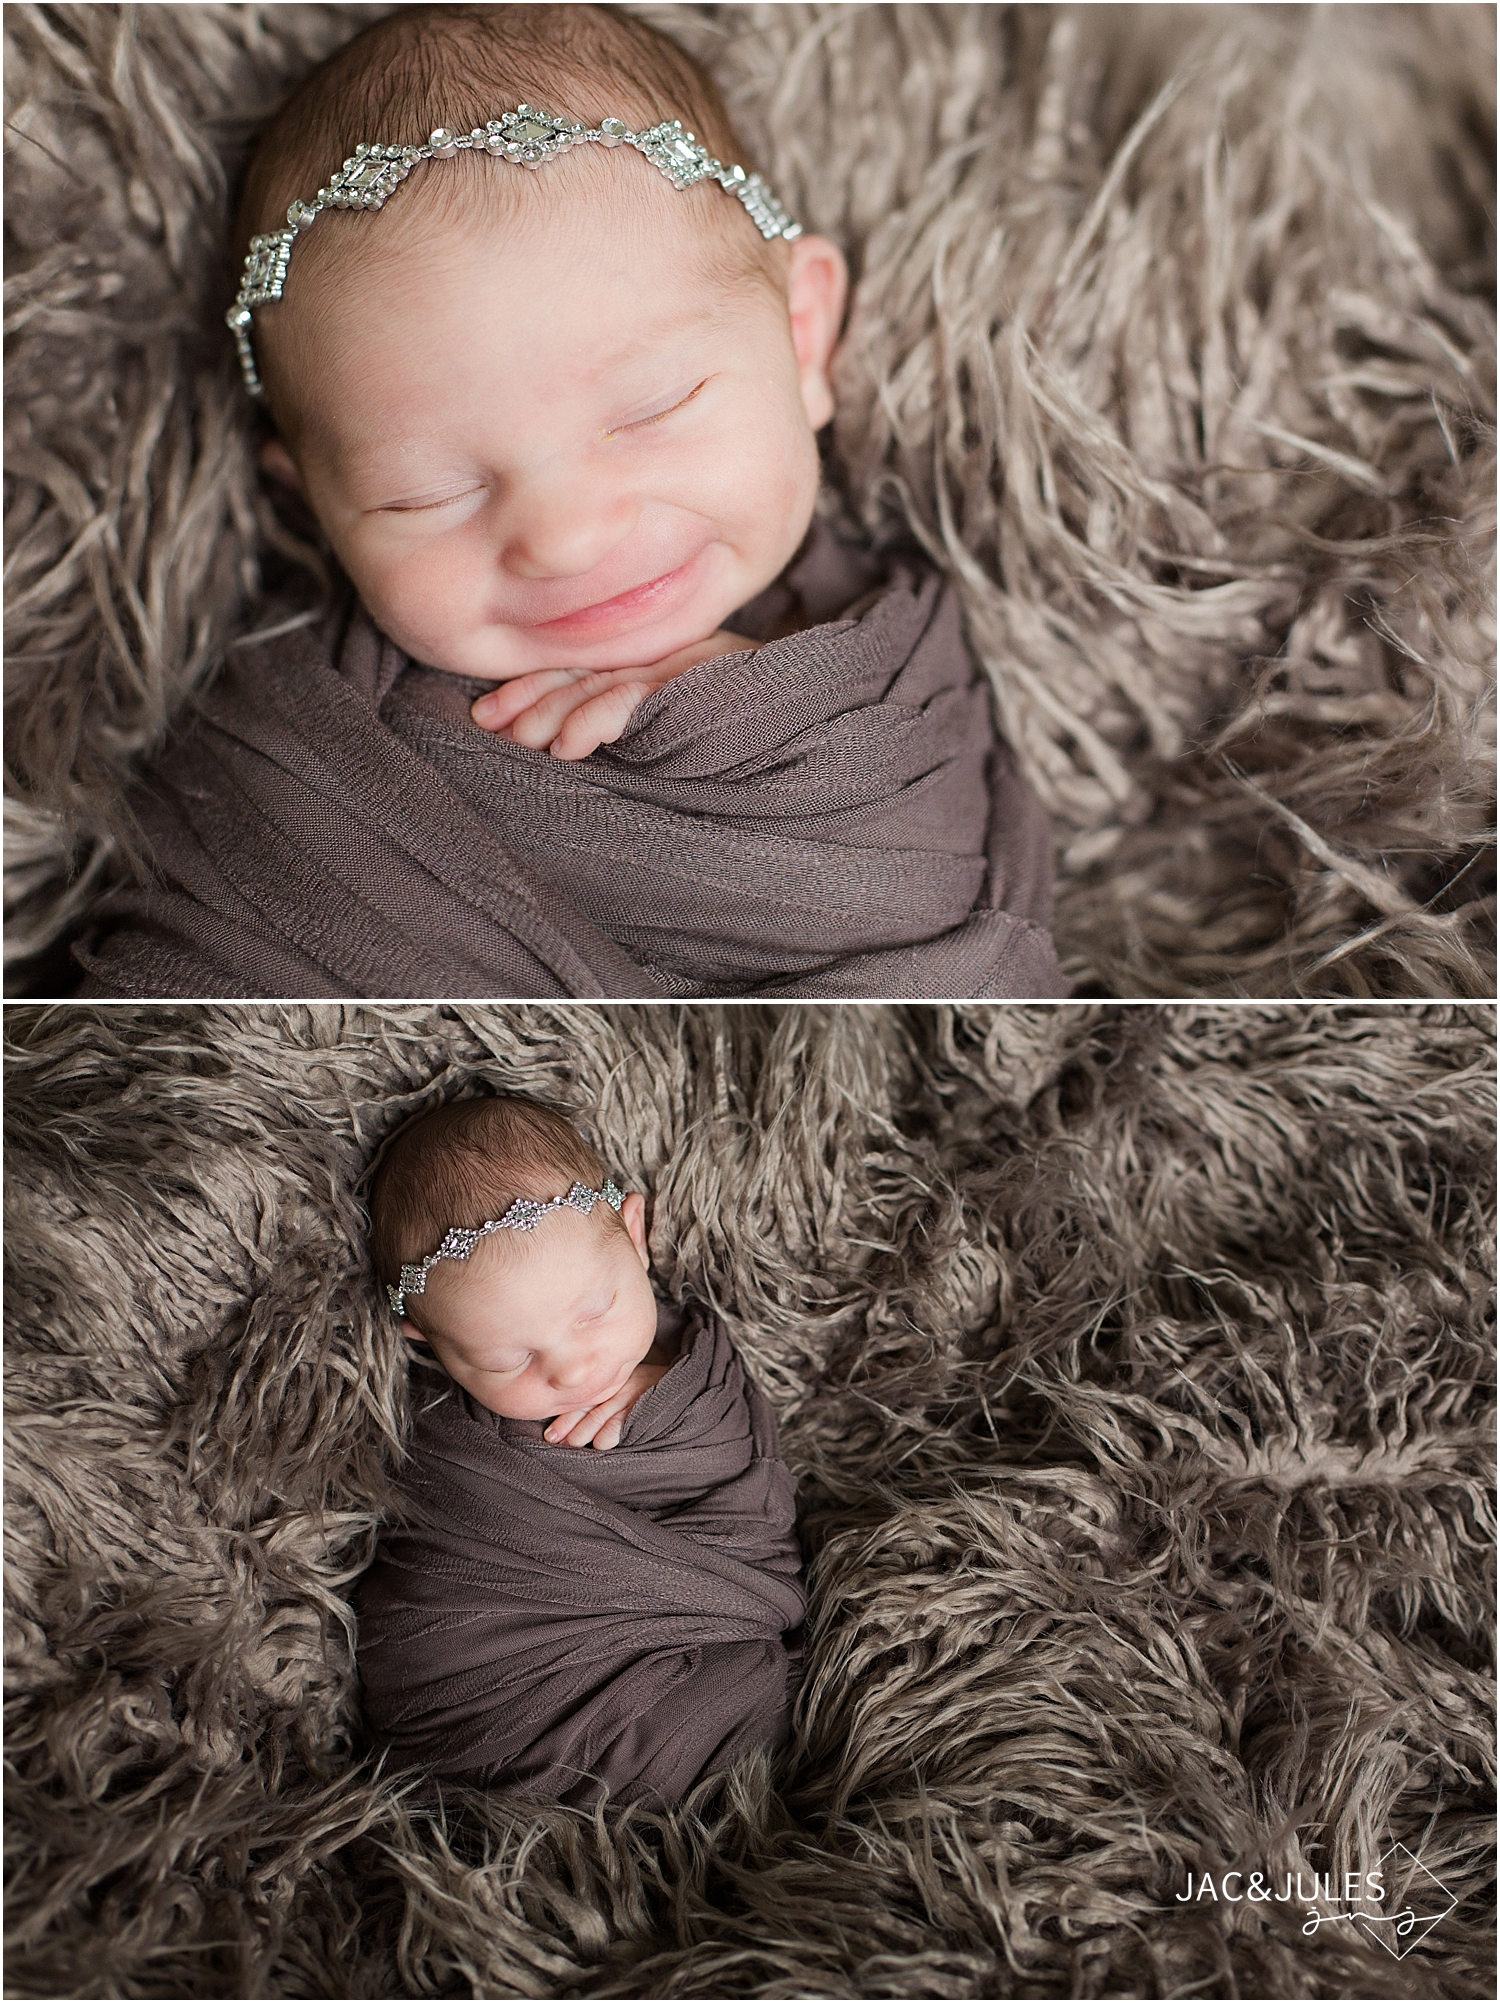 jacnjules photograph a smiling newborn baby girl in Toms River, NJ